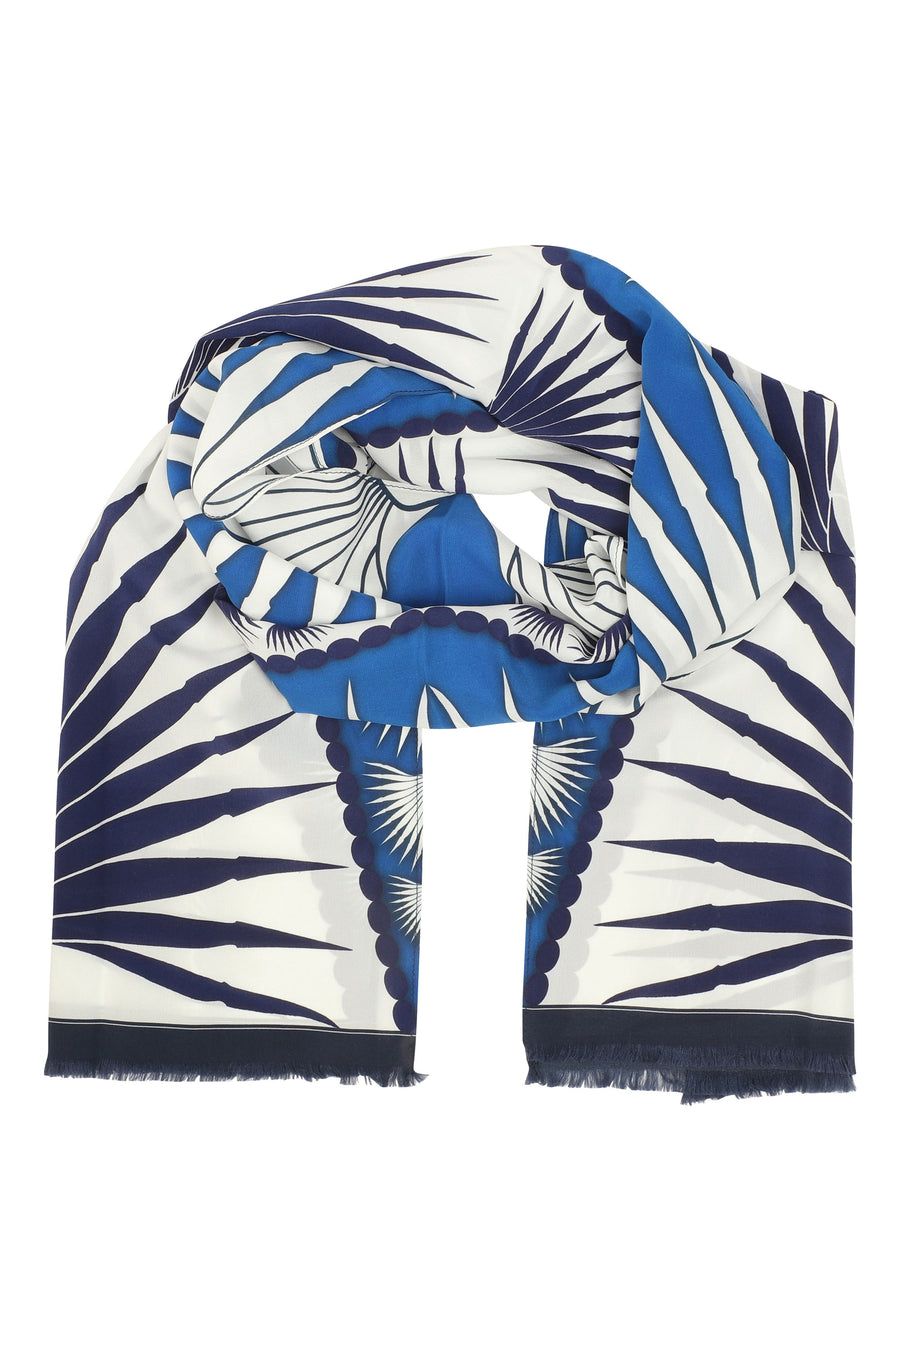 Lotty B Silk Long Silk Scarf: FAN PALM - BLUE, wrap around as head scarf - Mustique island style